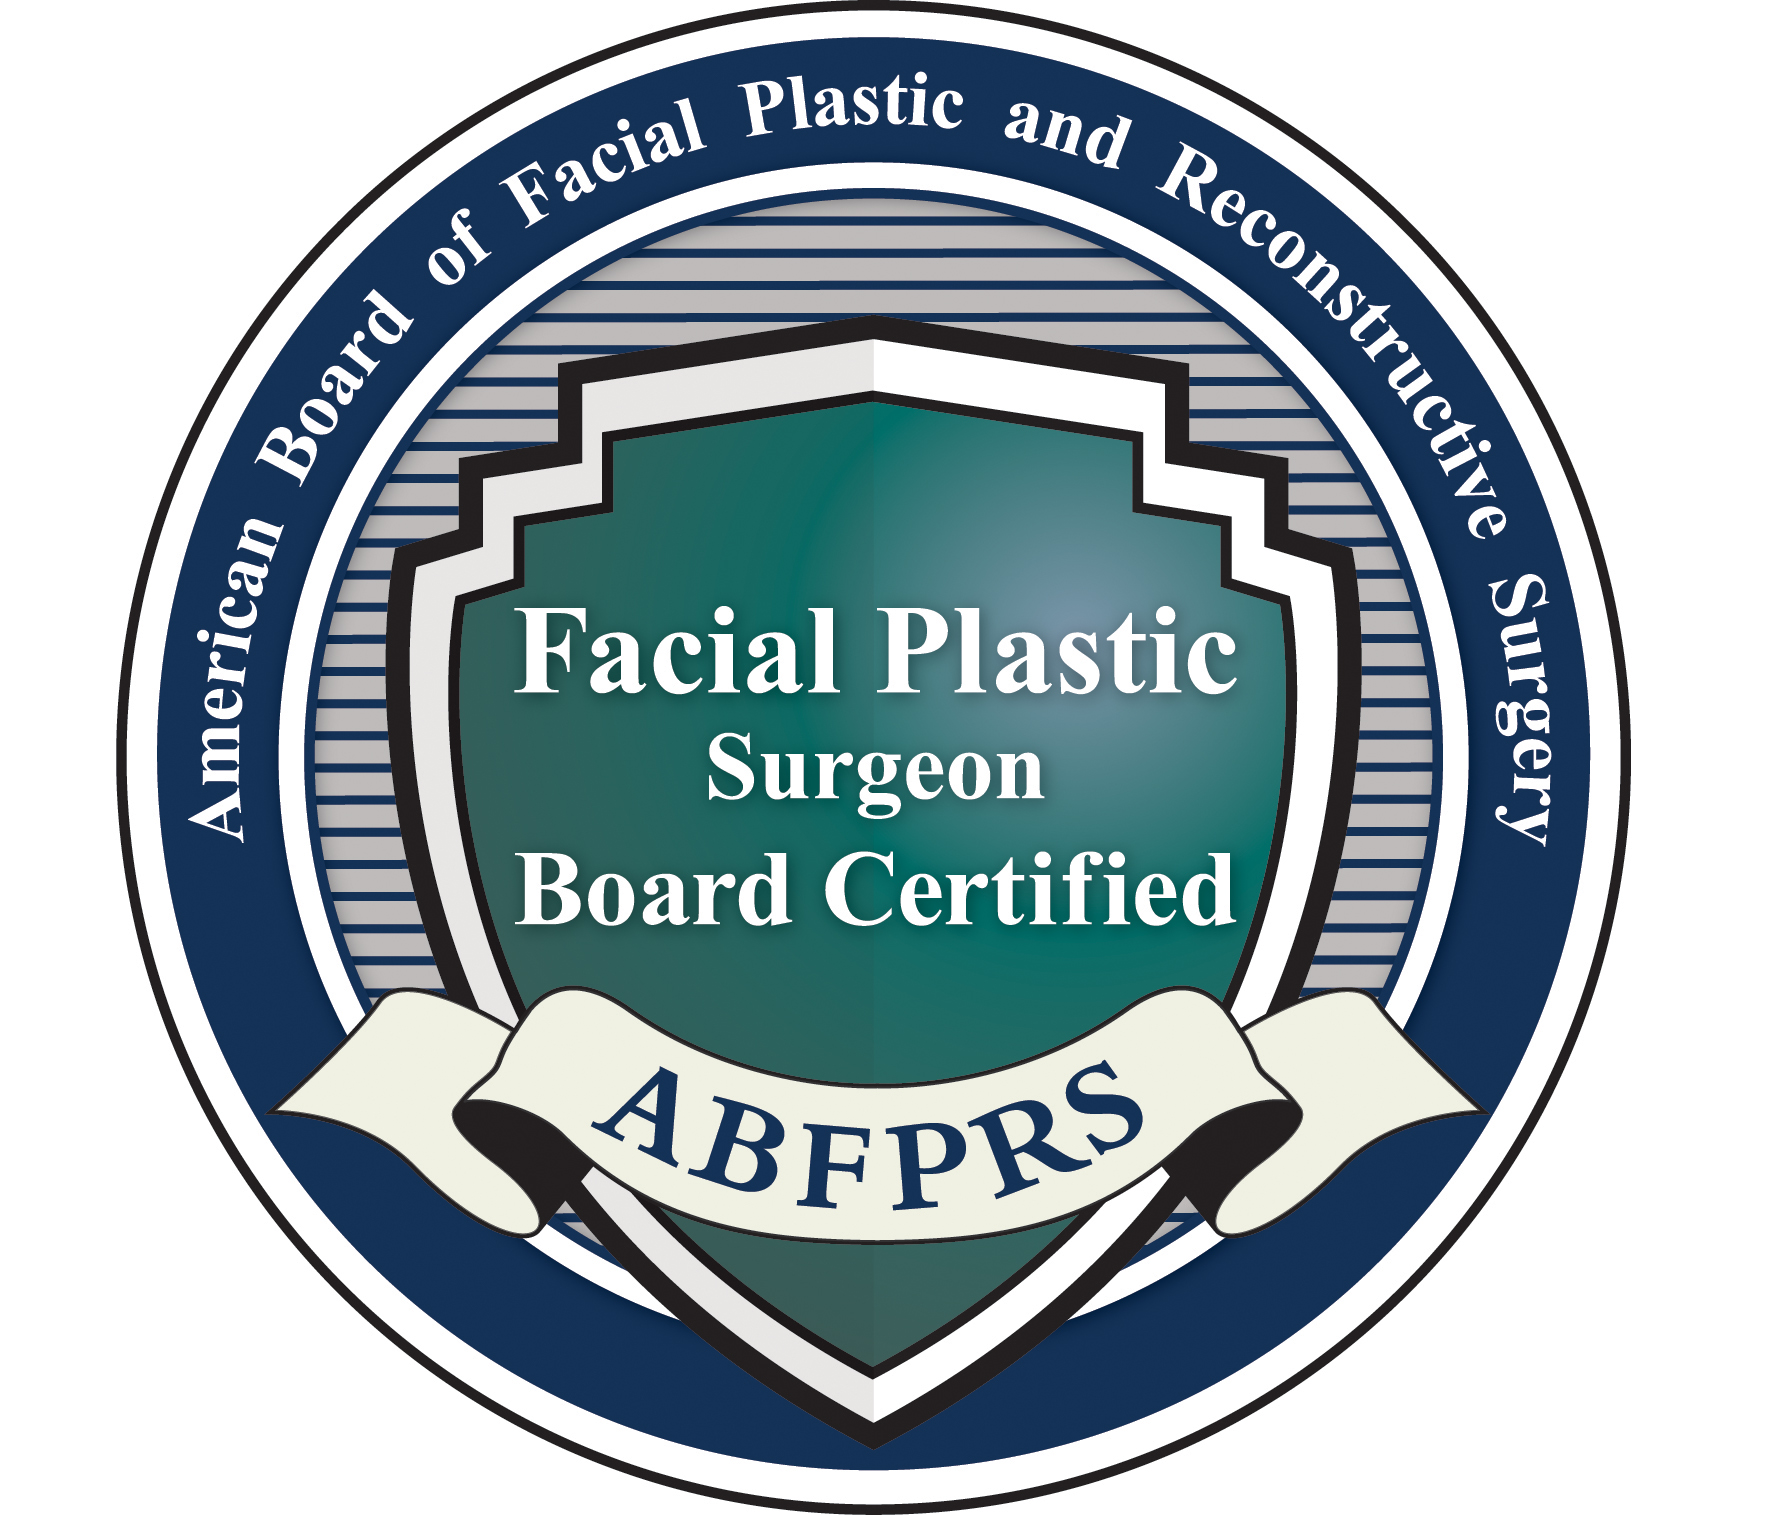 American Board of Facial Plastic and Reconstructive Surgery